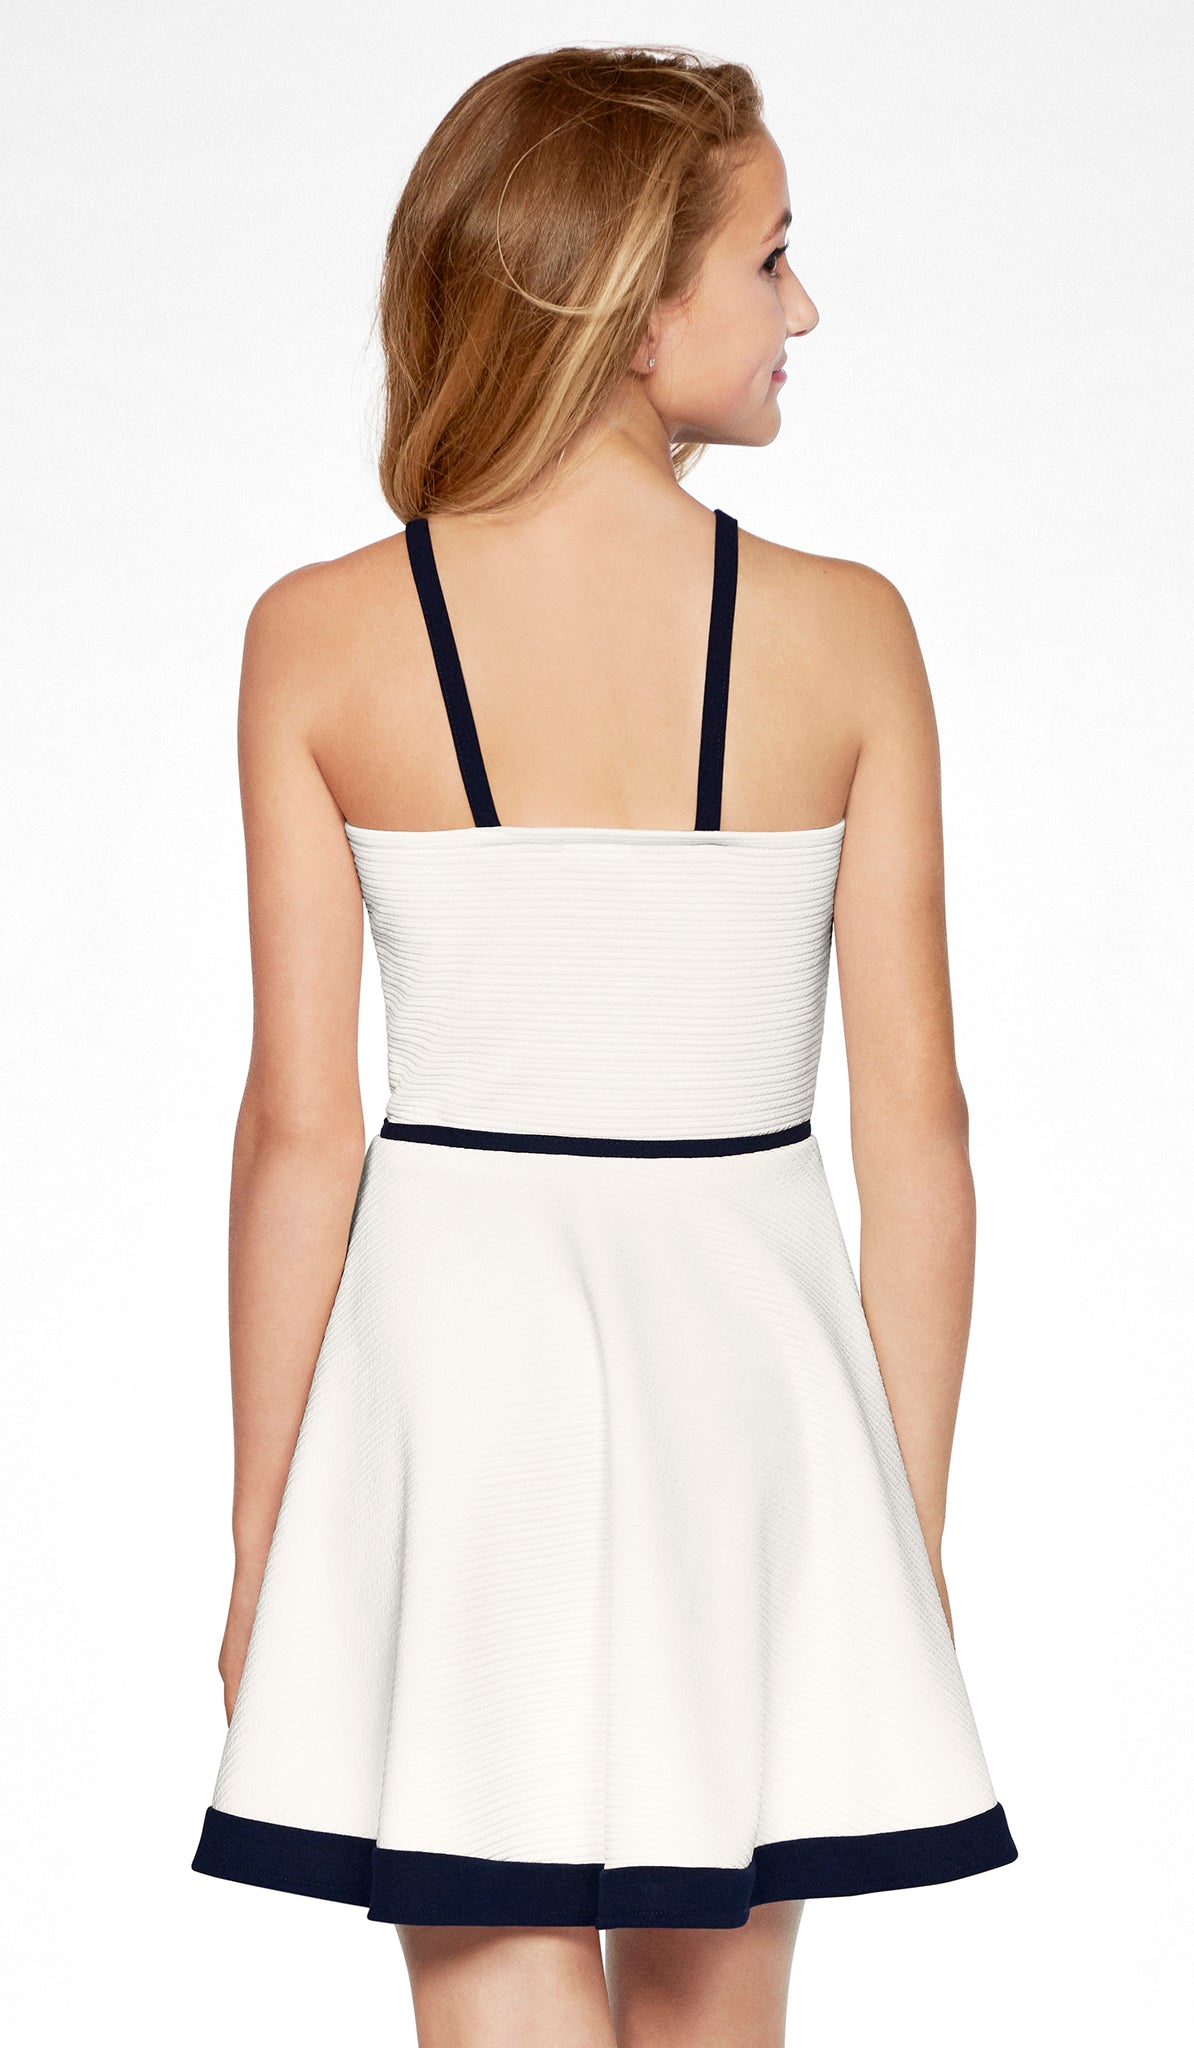 Ivory textured stretch knit fit and flare dress with navy detail the newport dress sally miller tween